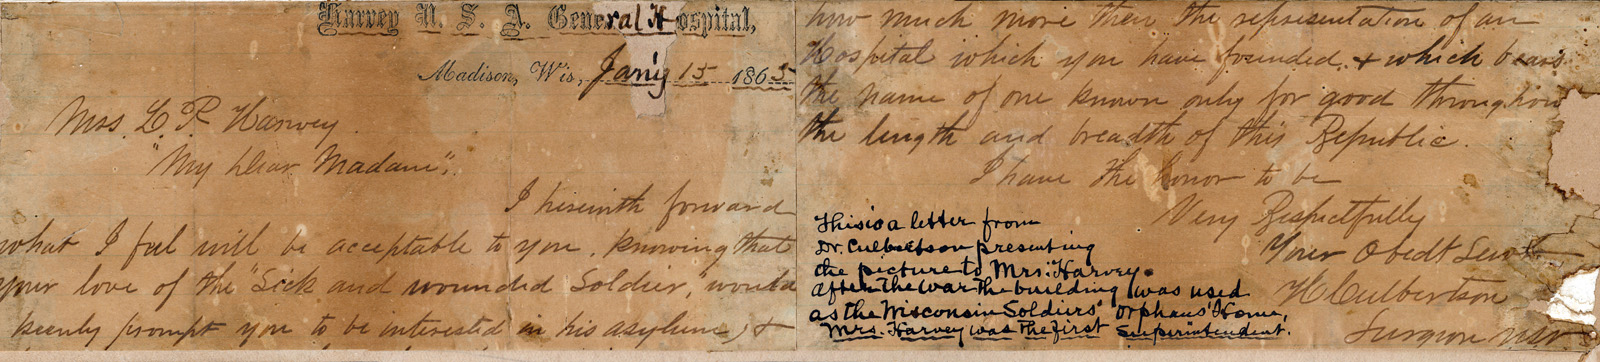 Note from Dr. Culbertson, presenting the drawing to Cordelia Harvey, the first superintendent of the Wisconsin Soldiers' Orphan's Home in Madison, given in thanks for her work for soldiers and their orphans. Also indicated is the donation of the drawing to the GAR by Mrs. Harvey's niece.